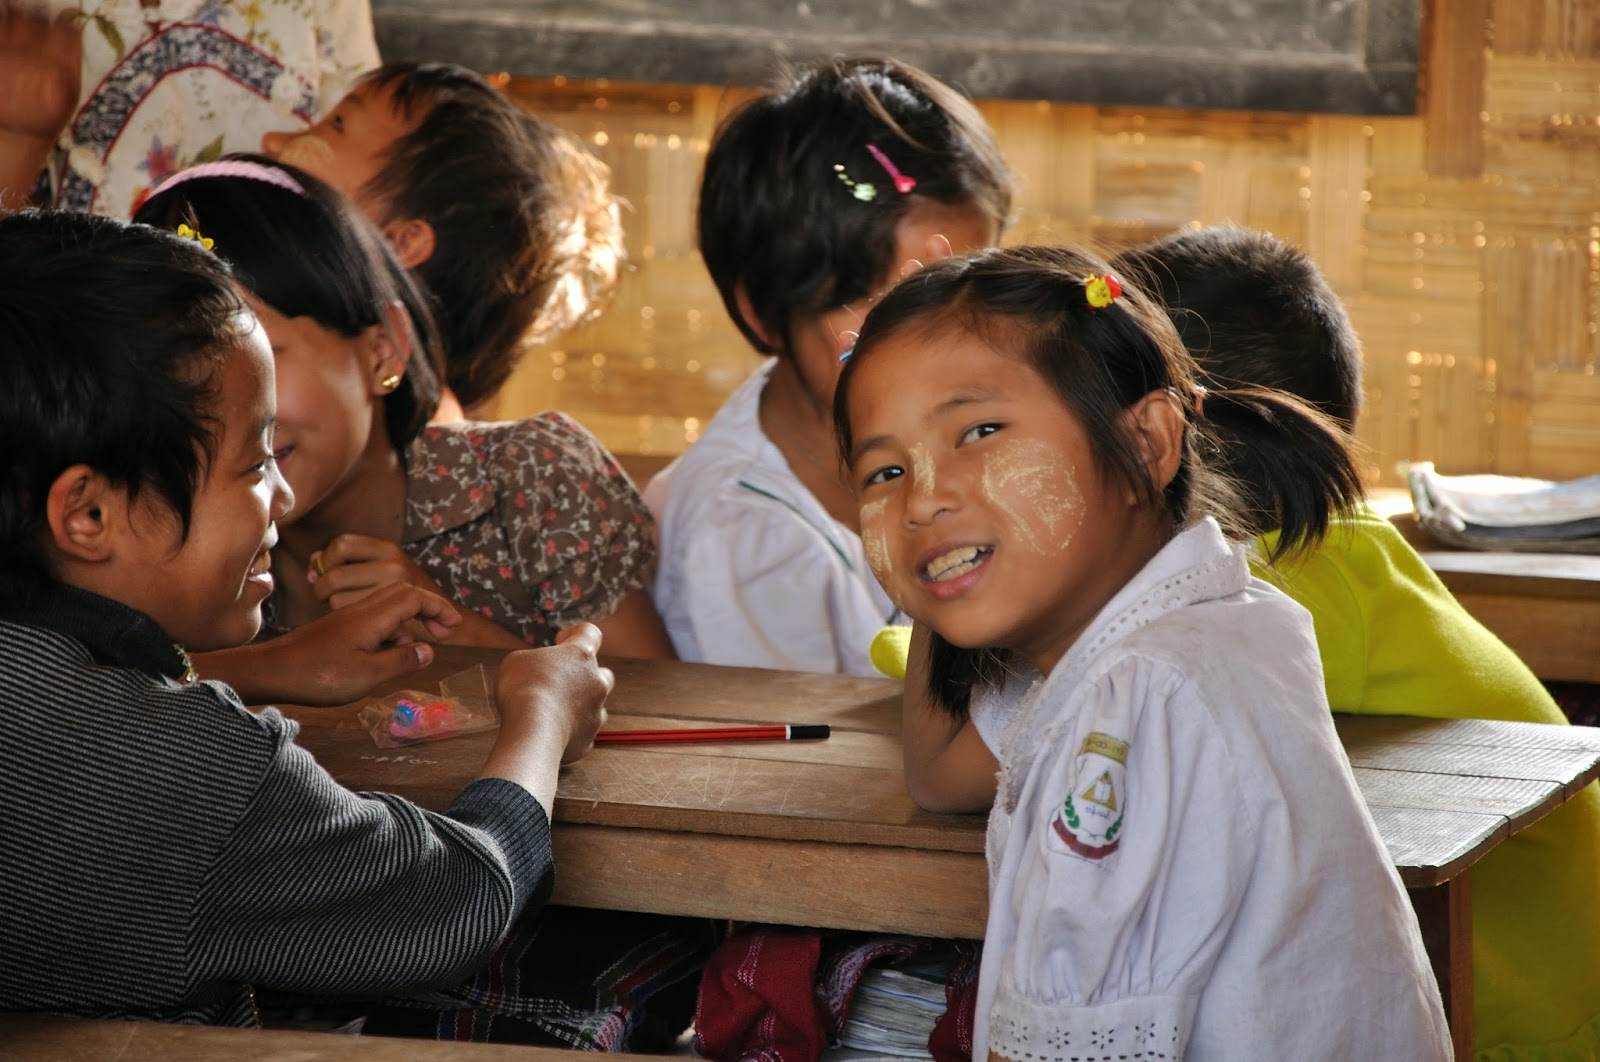 myanmar education The education system in myanmar is set for a major overhaul with the introduction of the national education sector plan (nesp), which aims to meet the needs of a rapidly changing economy.